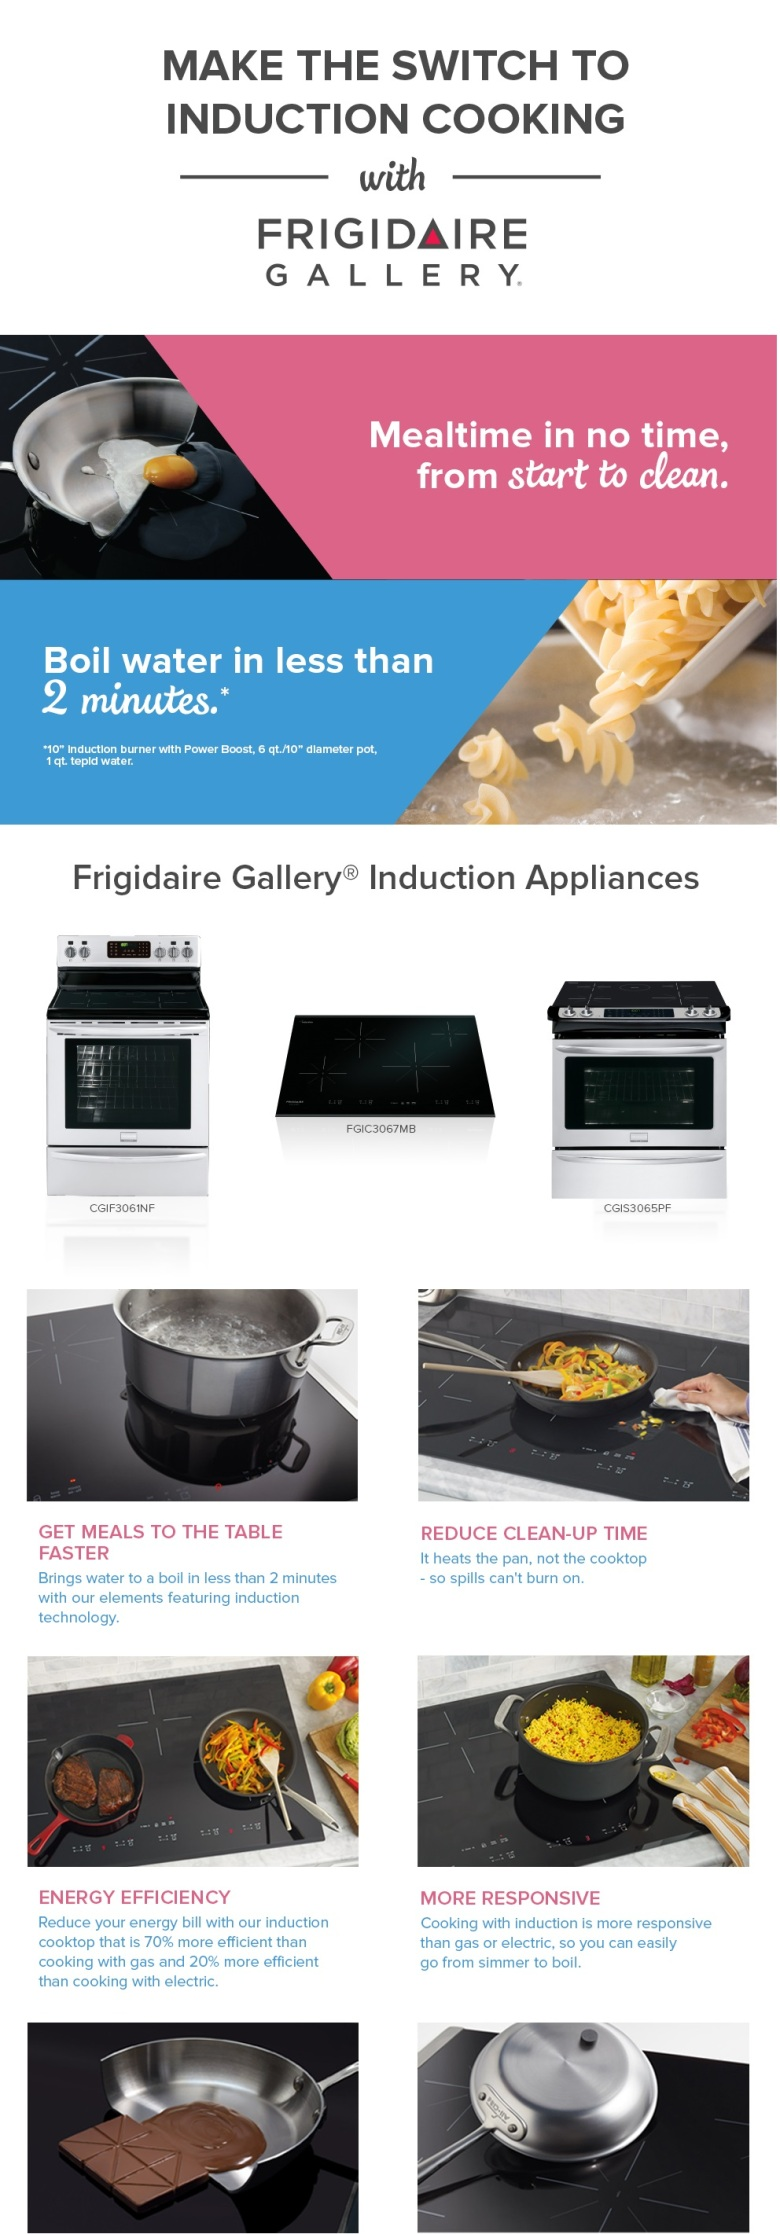 FCDN-JAN17-INDUCTION-ASSETS-LANDINGPAGE-EN.jpg